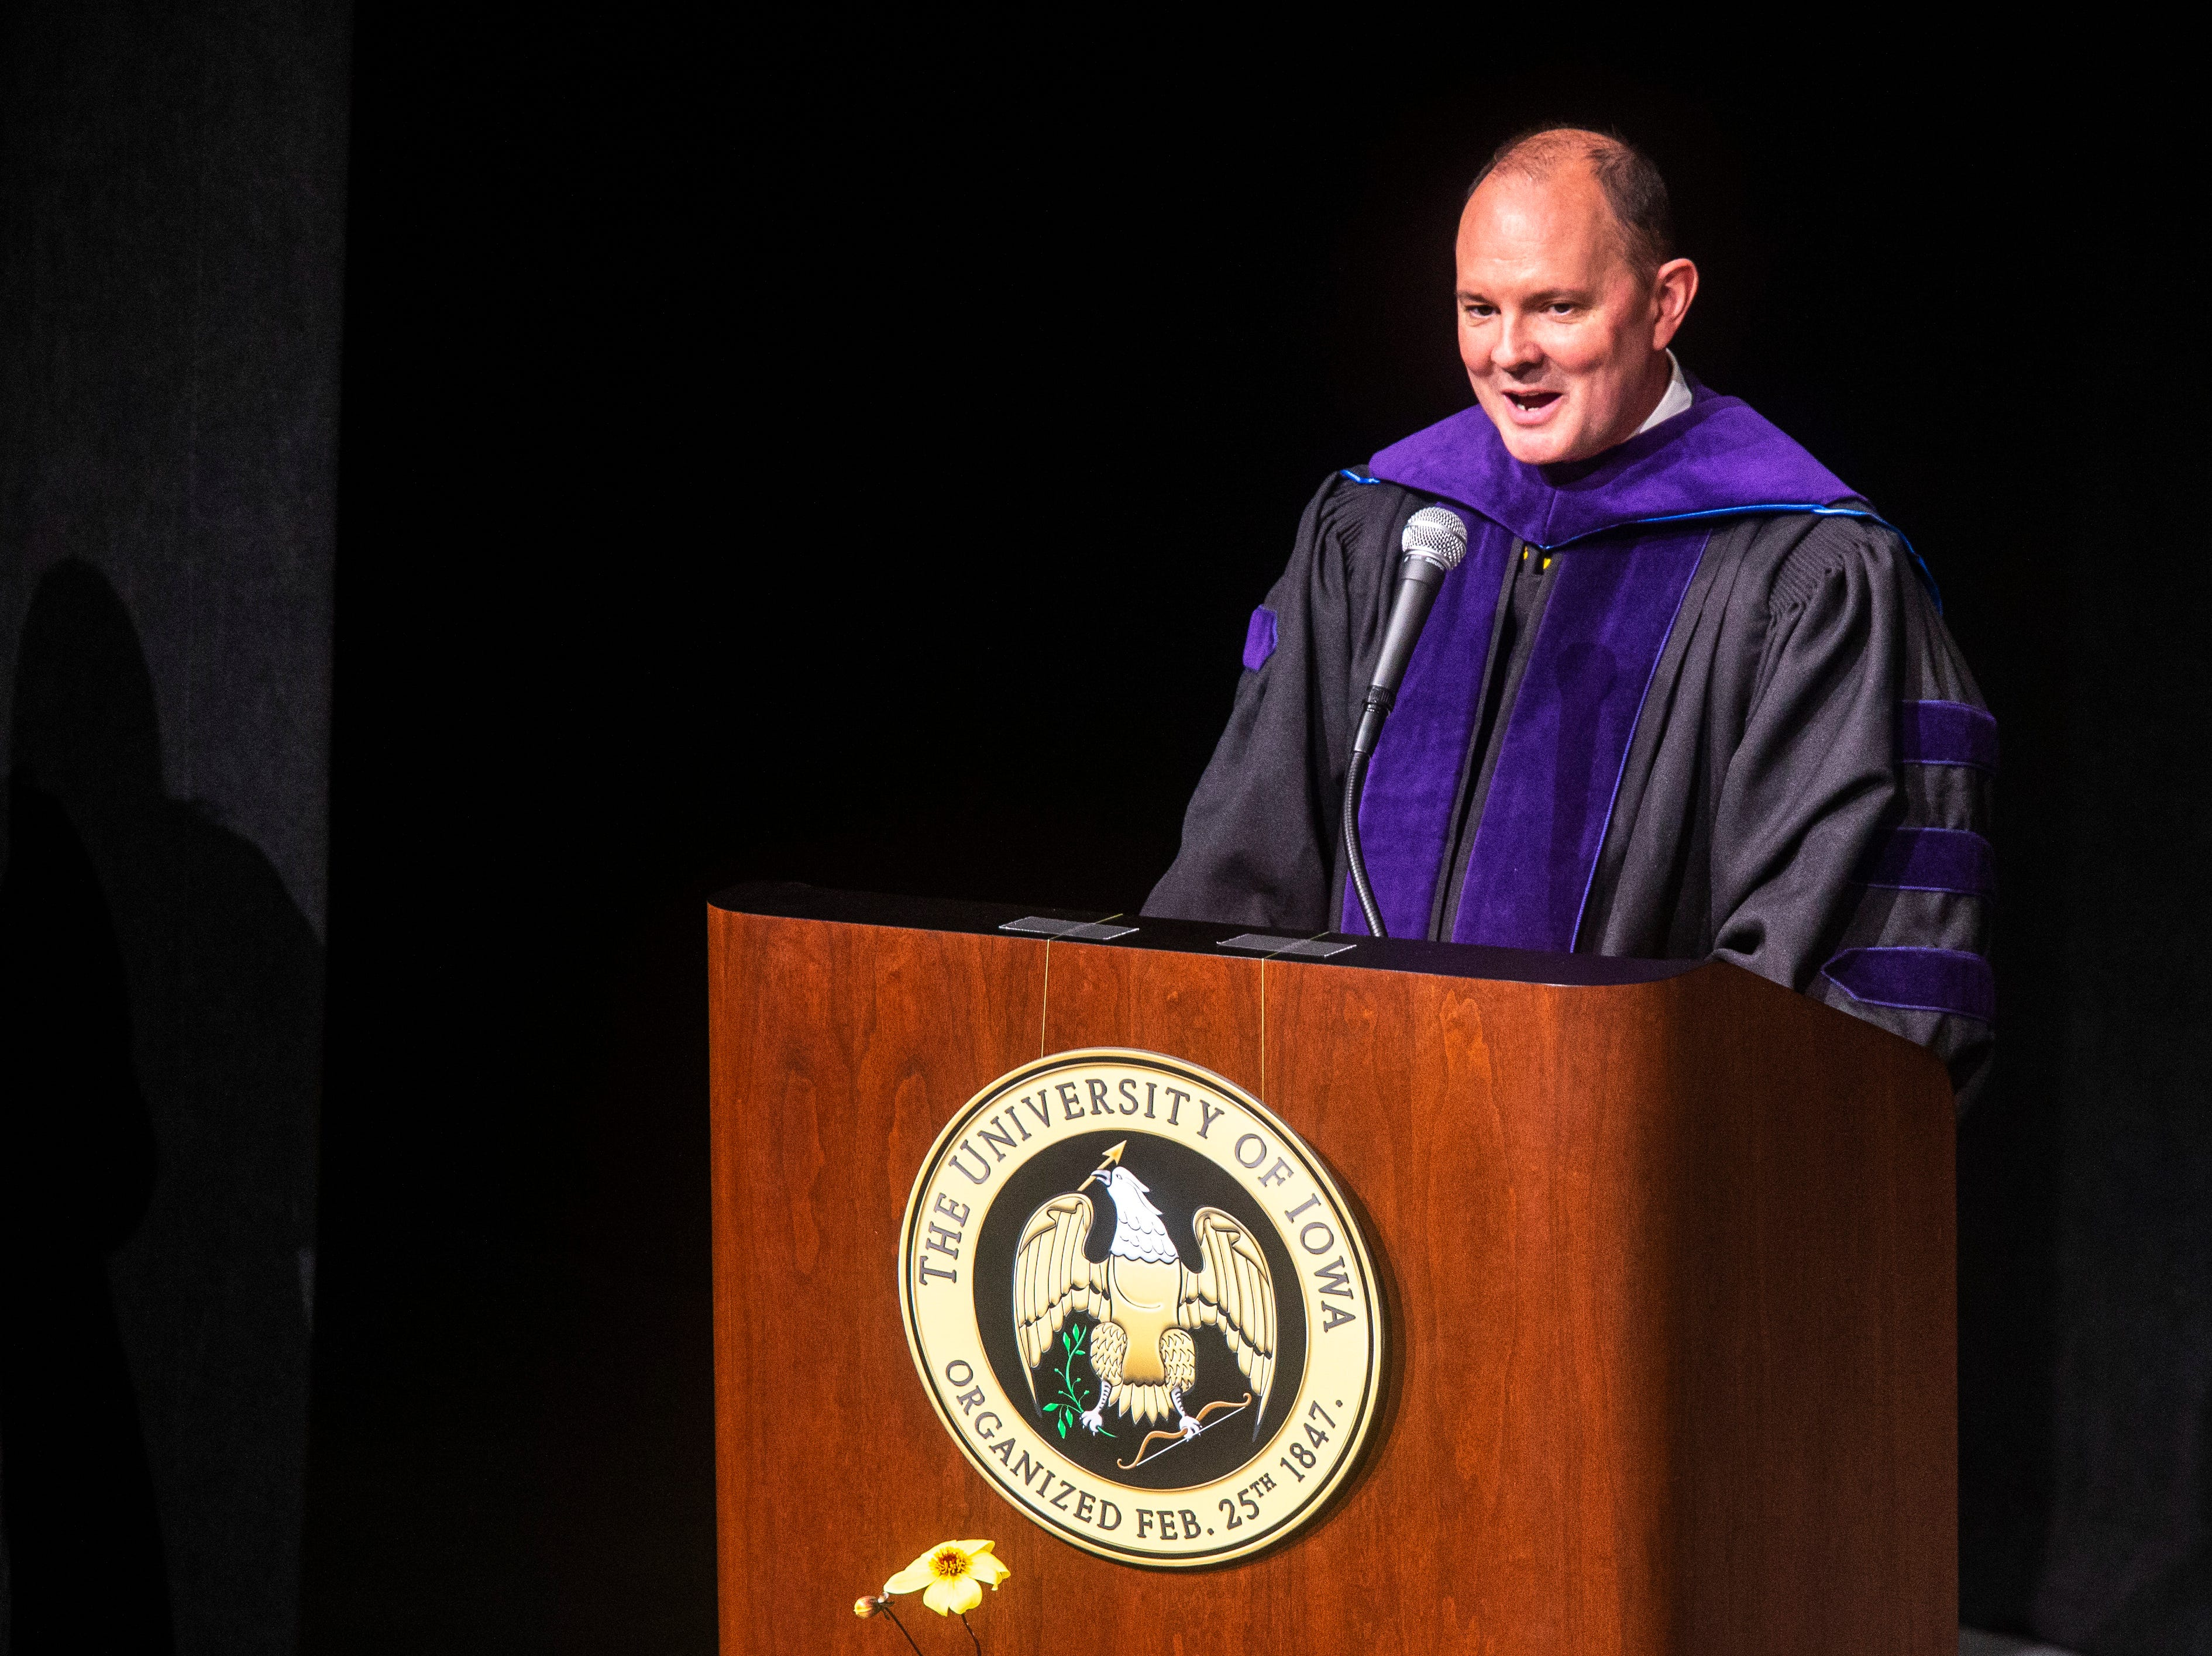 Kevin K. Washburn, N. William Hines Dean and Professor of Law, speaks during the College of Law commencement ceremony, Friday, May 10, 2019, at Hancher Auditorium on the University of Iowa campus in Iowa City, Iowa.